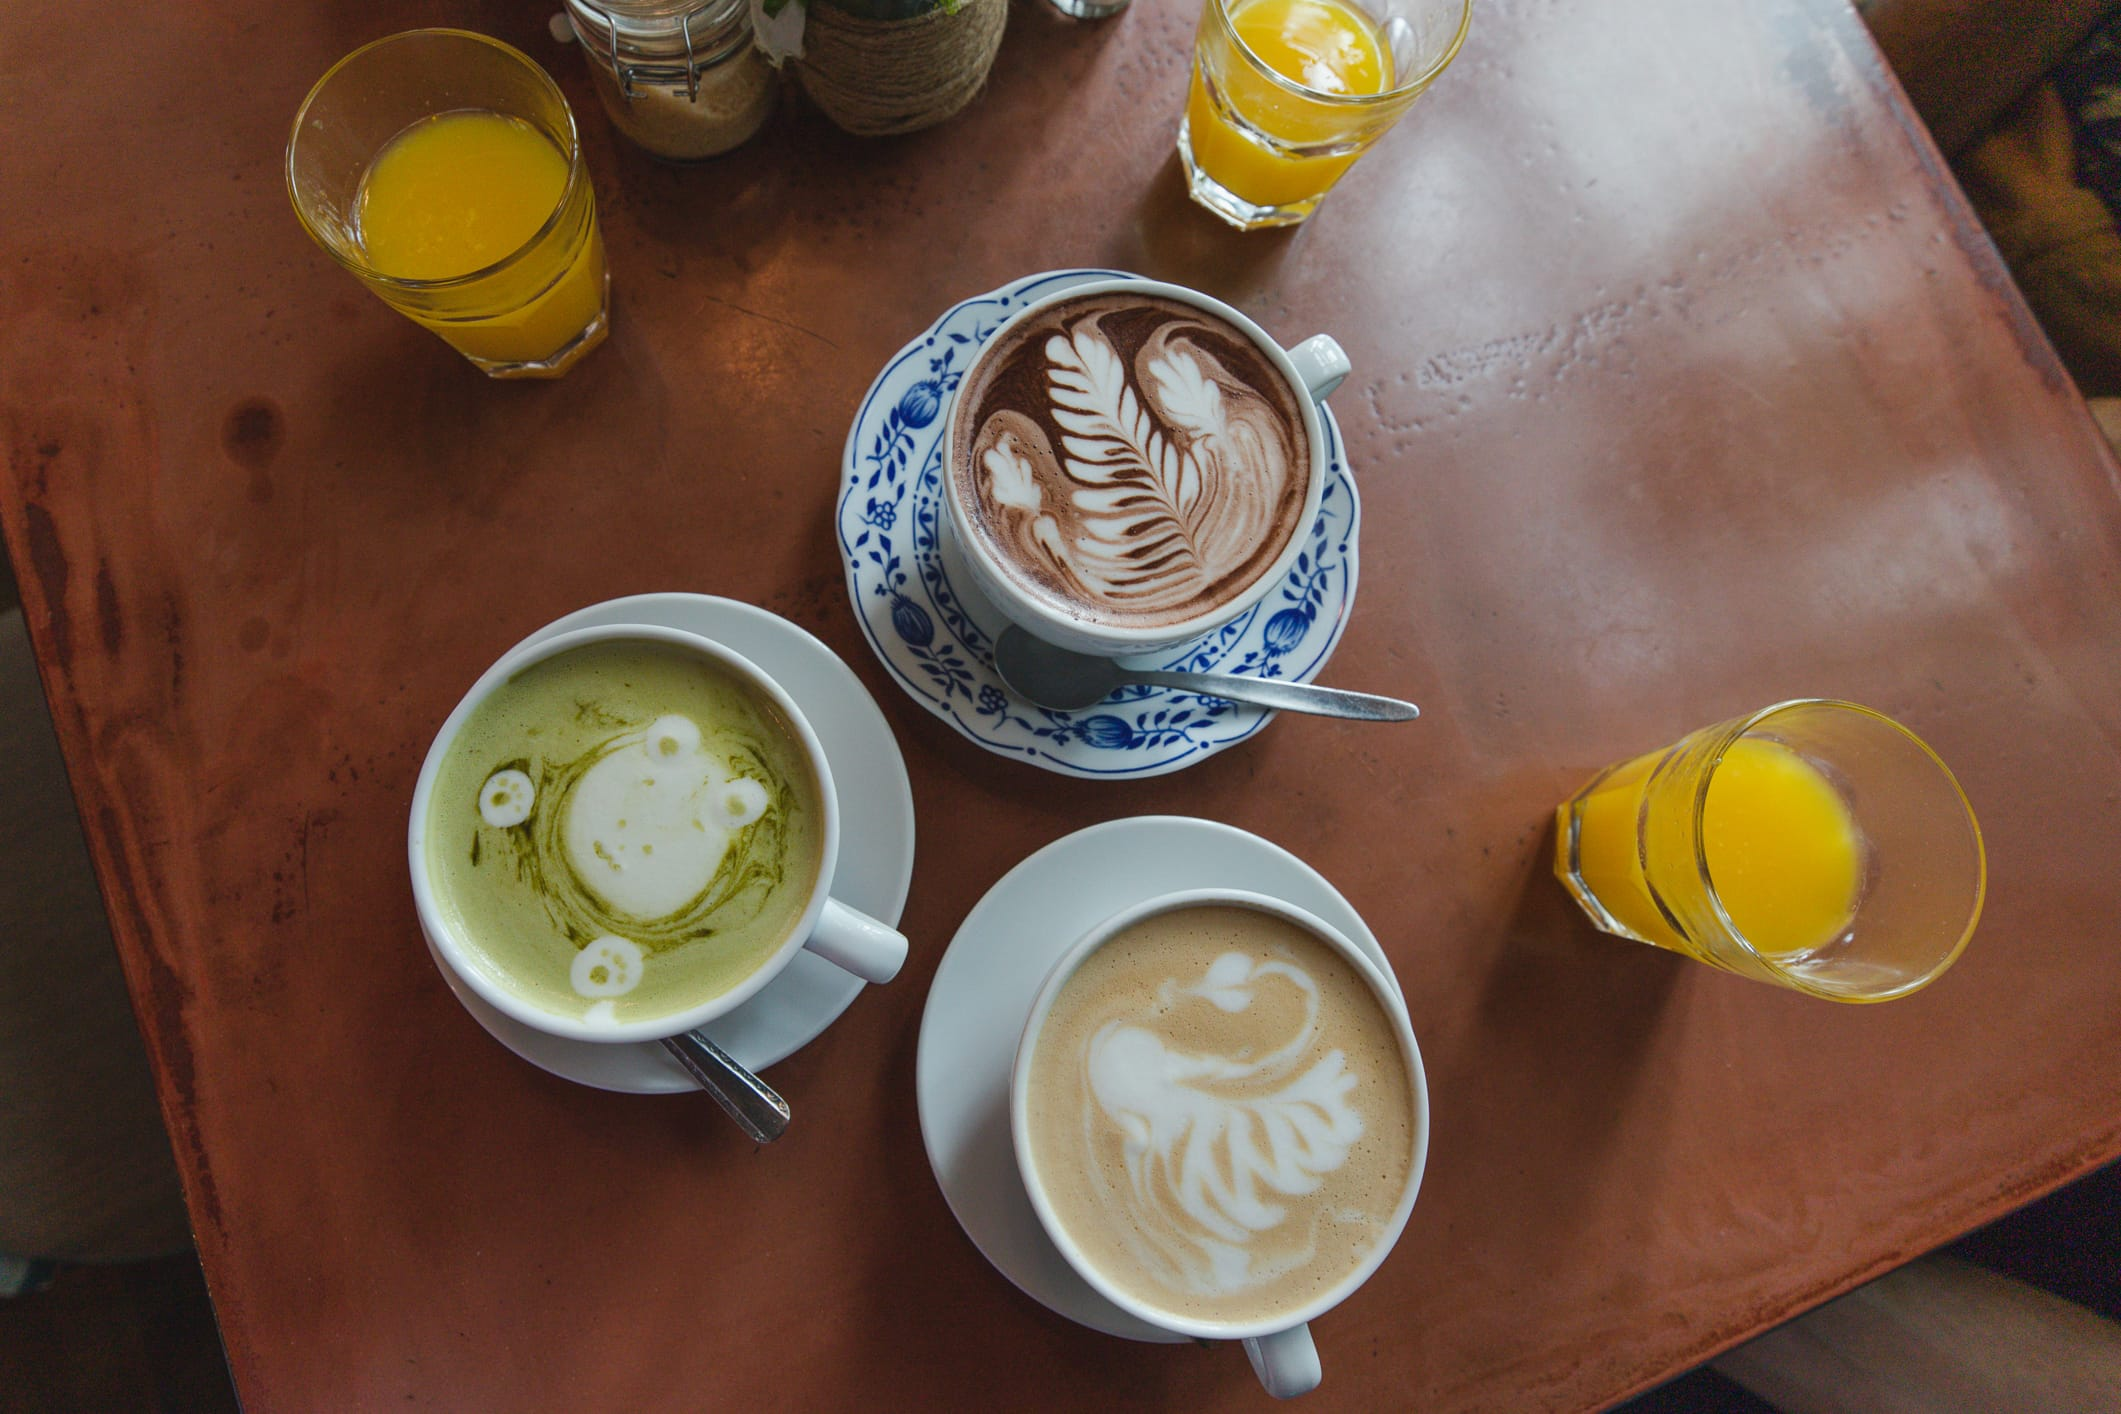 Cute lattes at Small Wonder, which is where to eat in Berlin